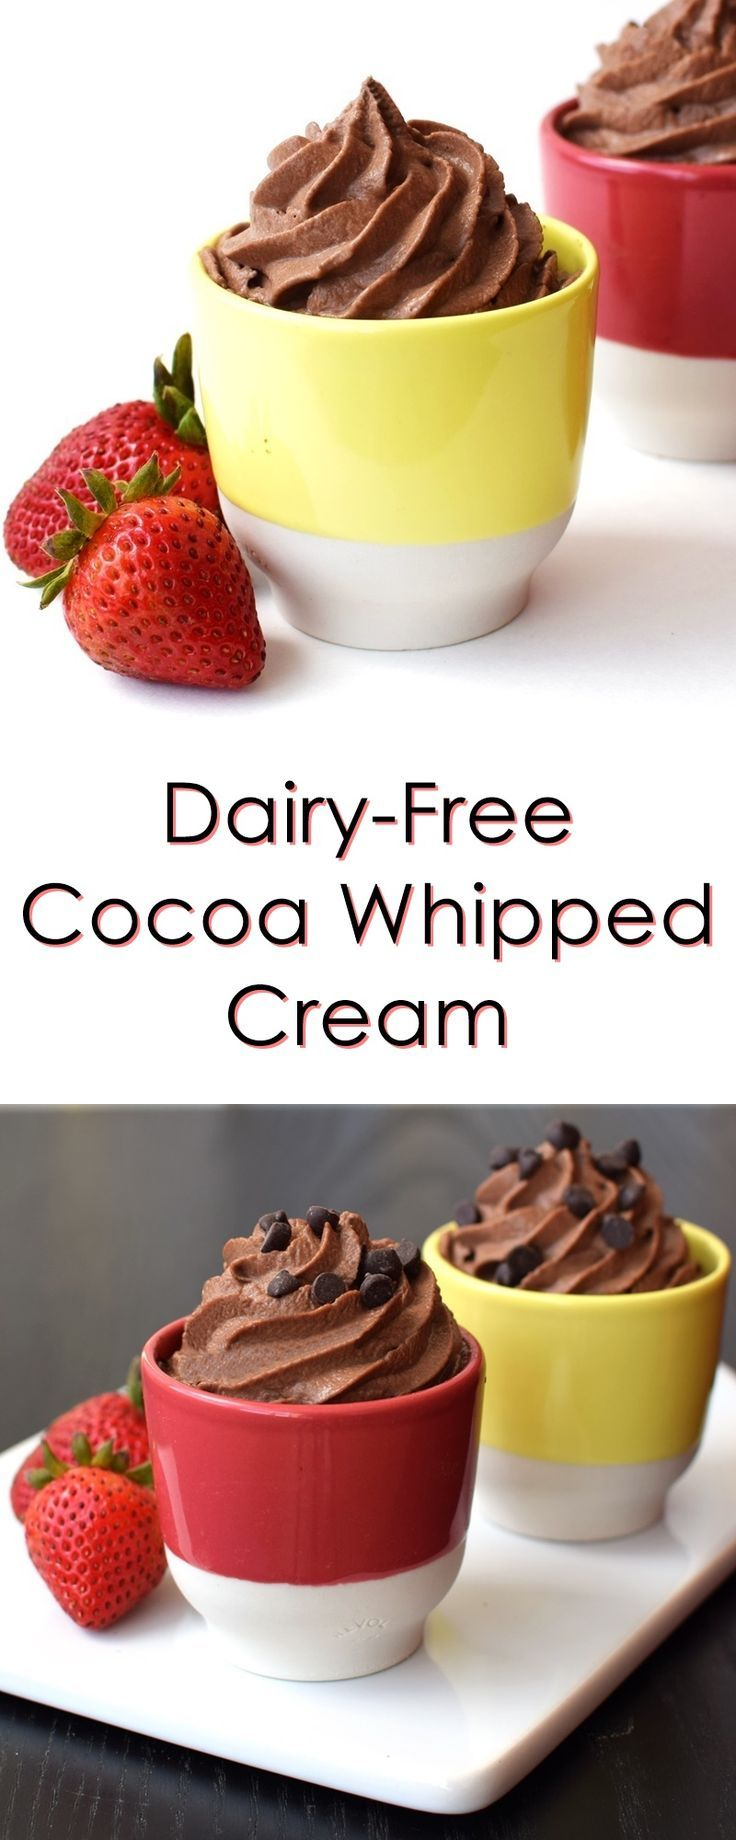 Dairy-Free Chocolate Whipped Cream Recipe - vegan, soy-free and easy!